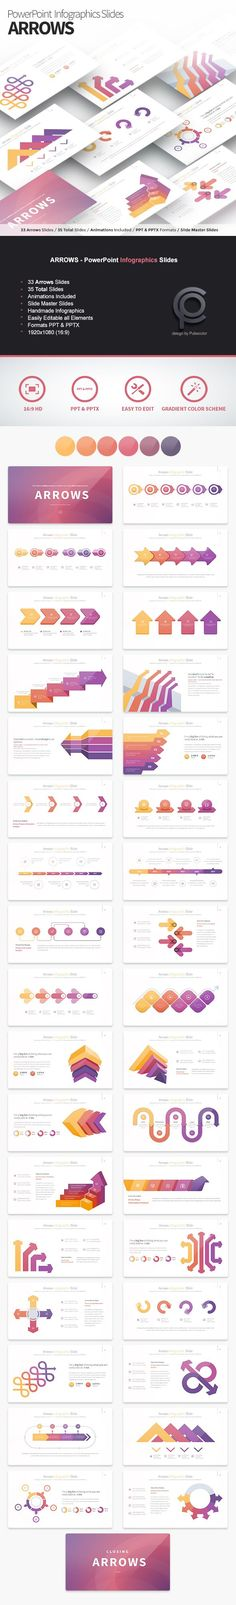 ARROWS - PowerPoint Infographics Slides Template - 35 Total Slides